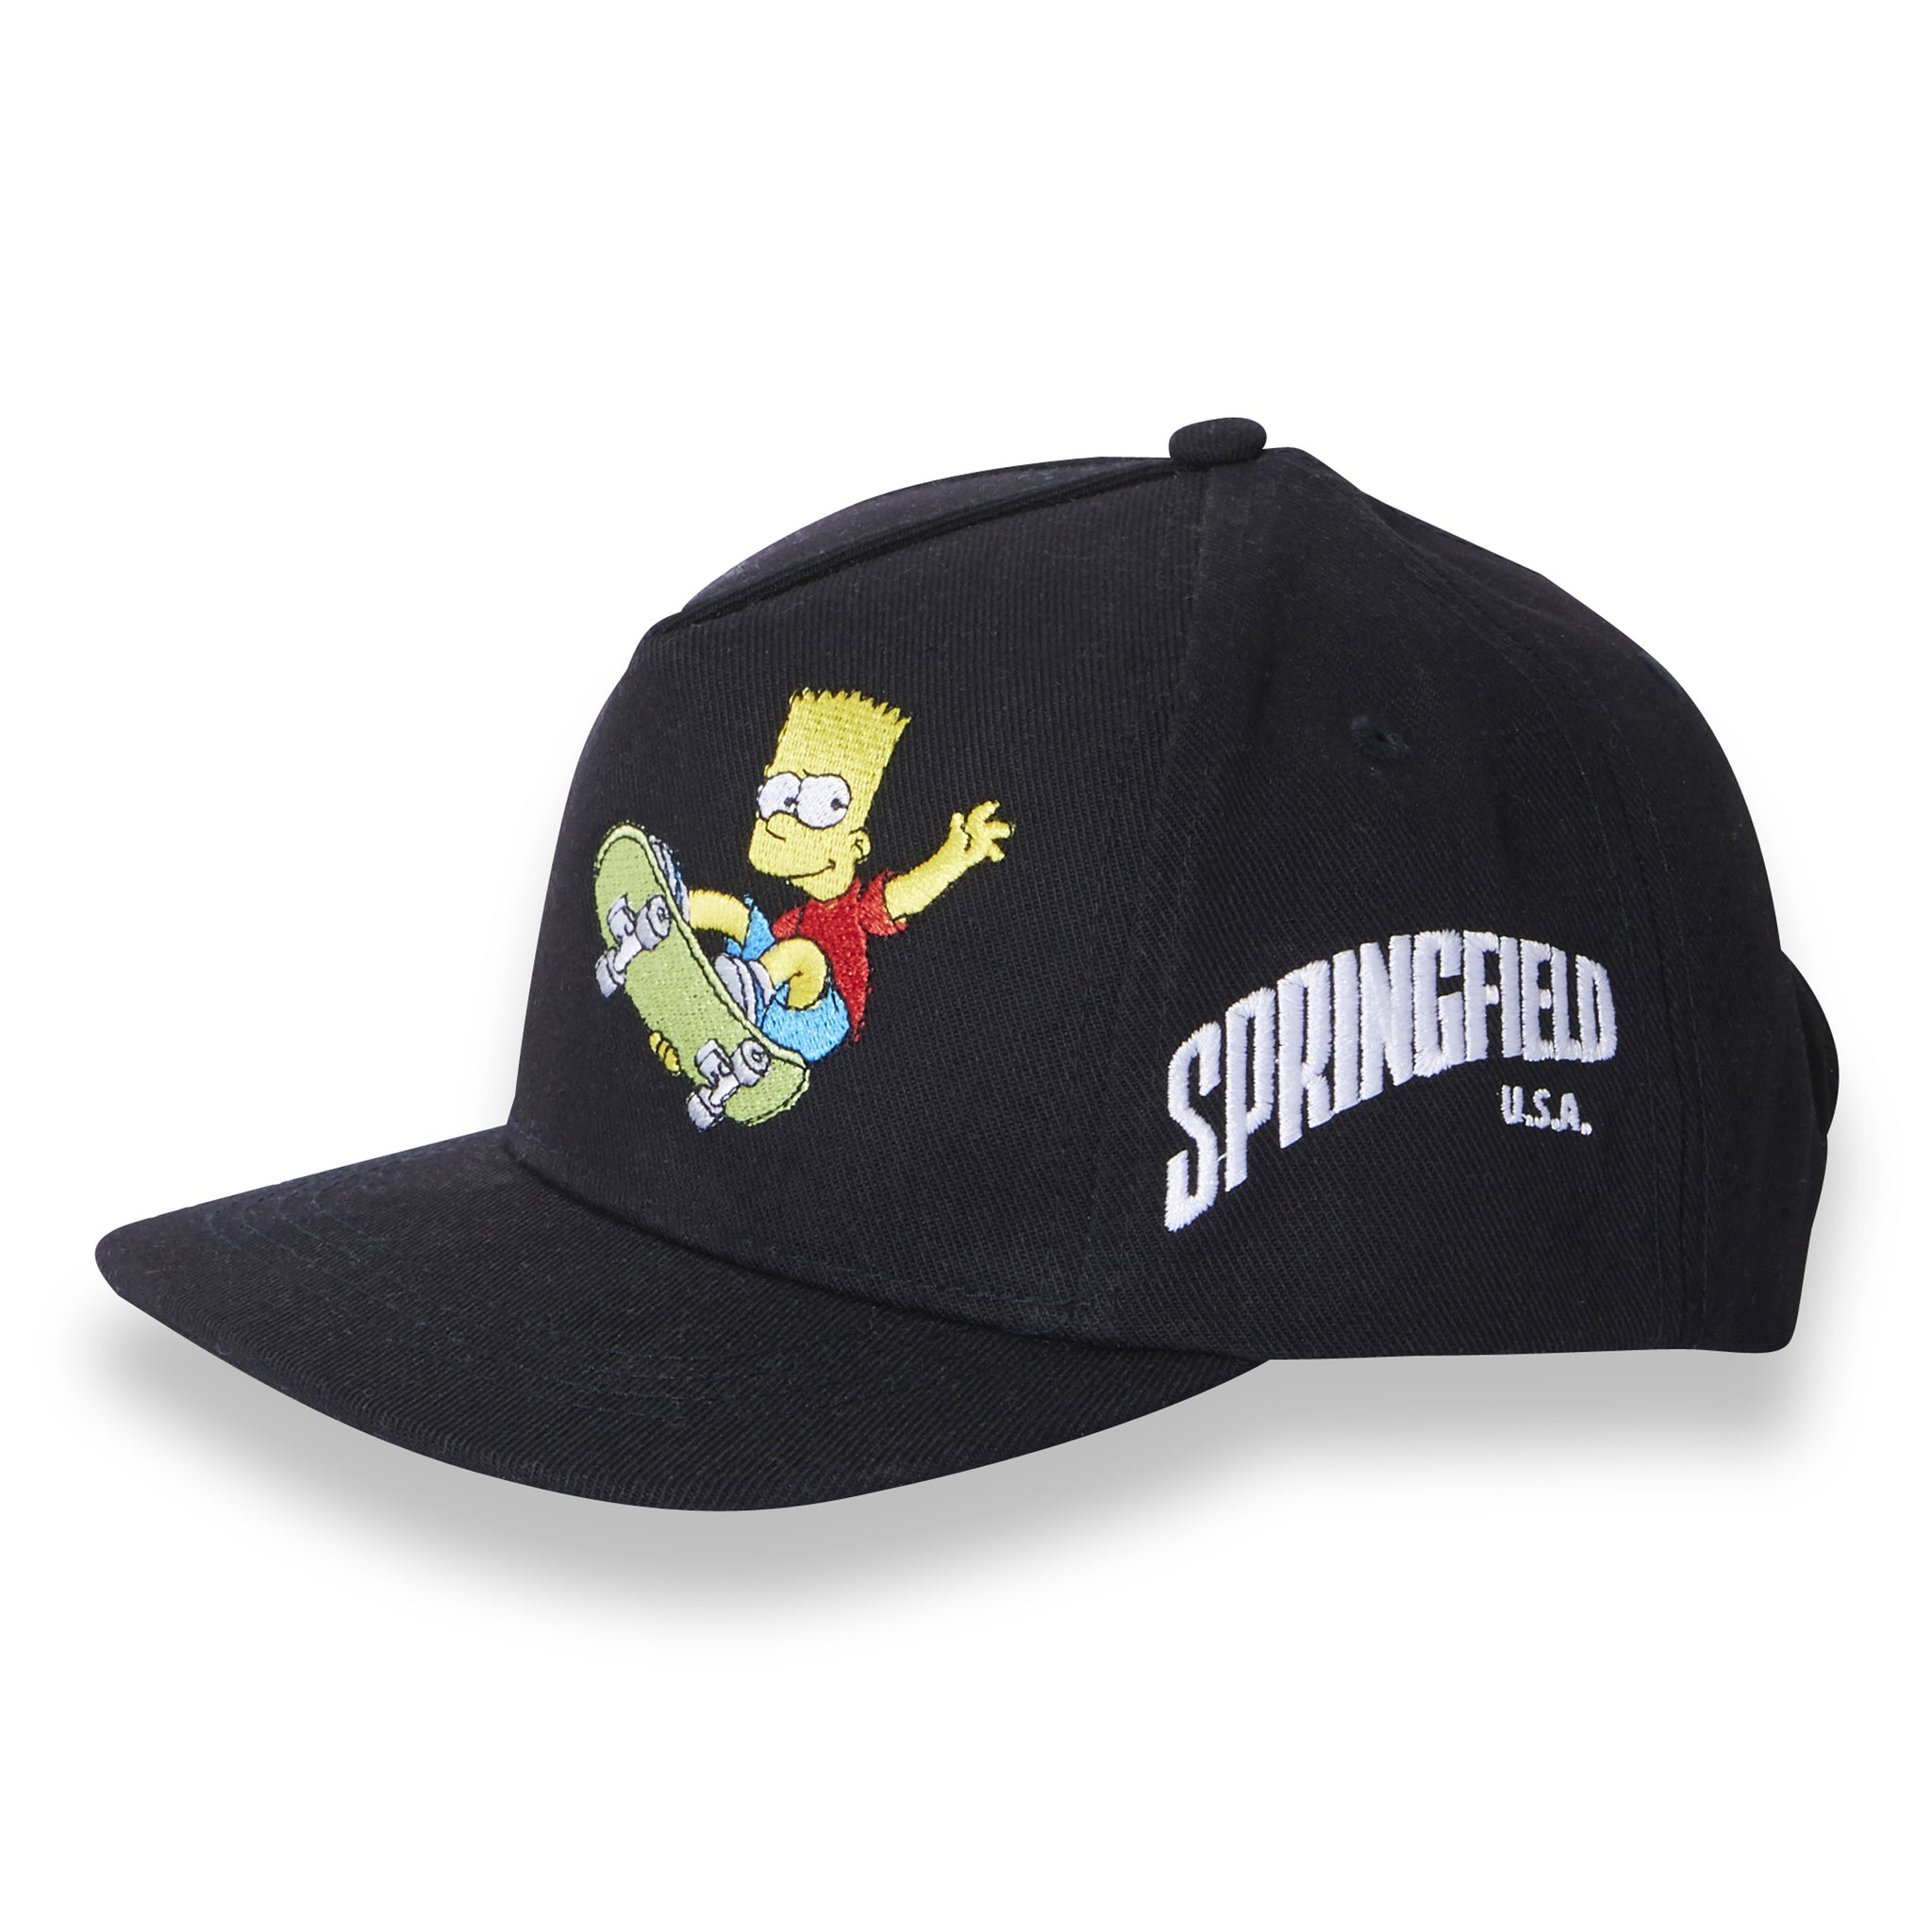 SUNBLADE  Black Bart Skate -  Unisex woven cap by Finger in the Nose